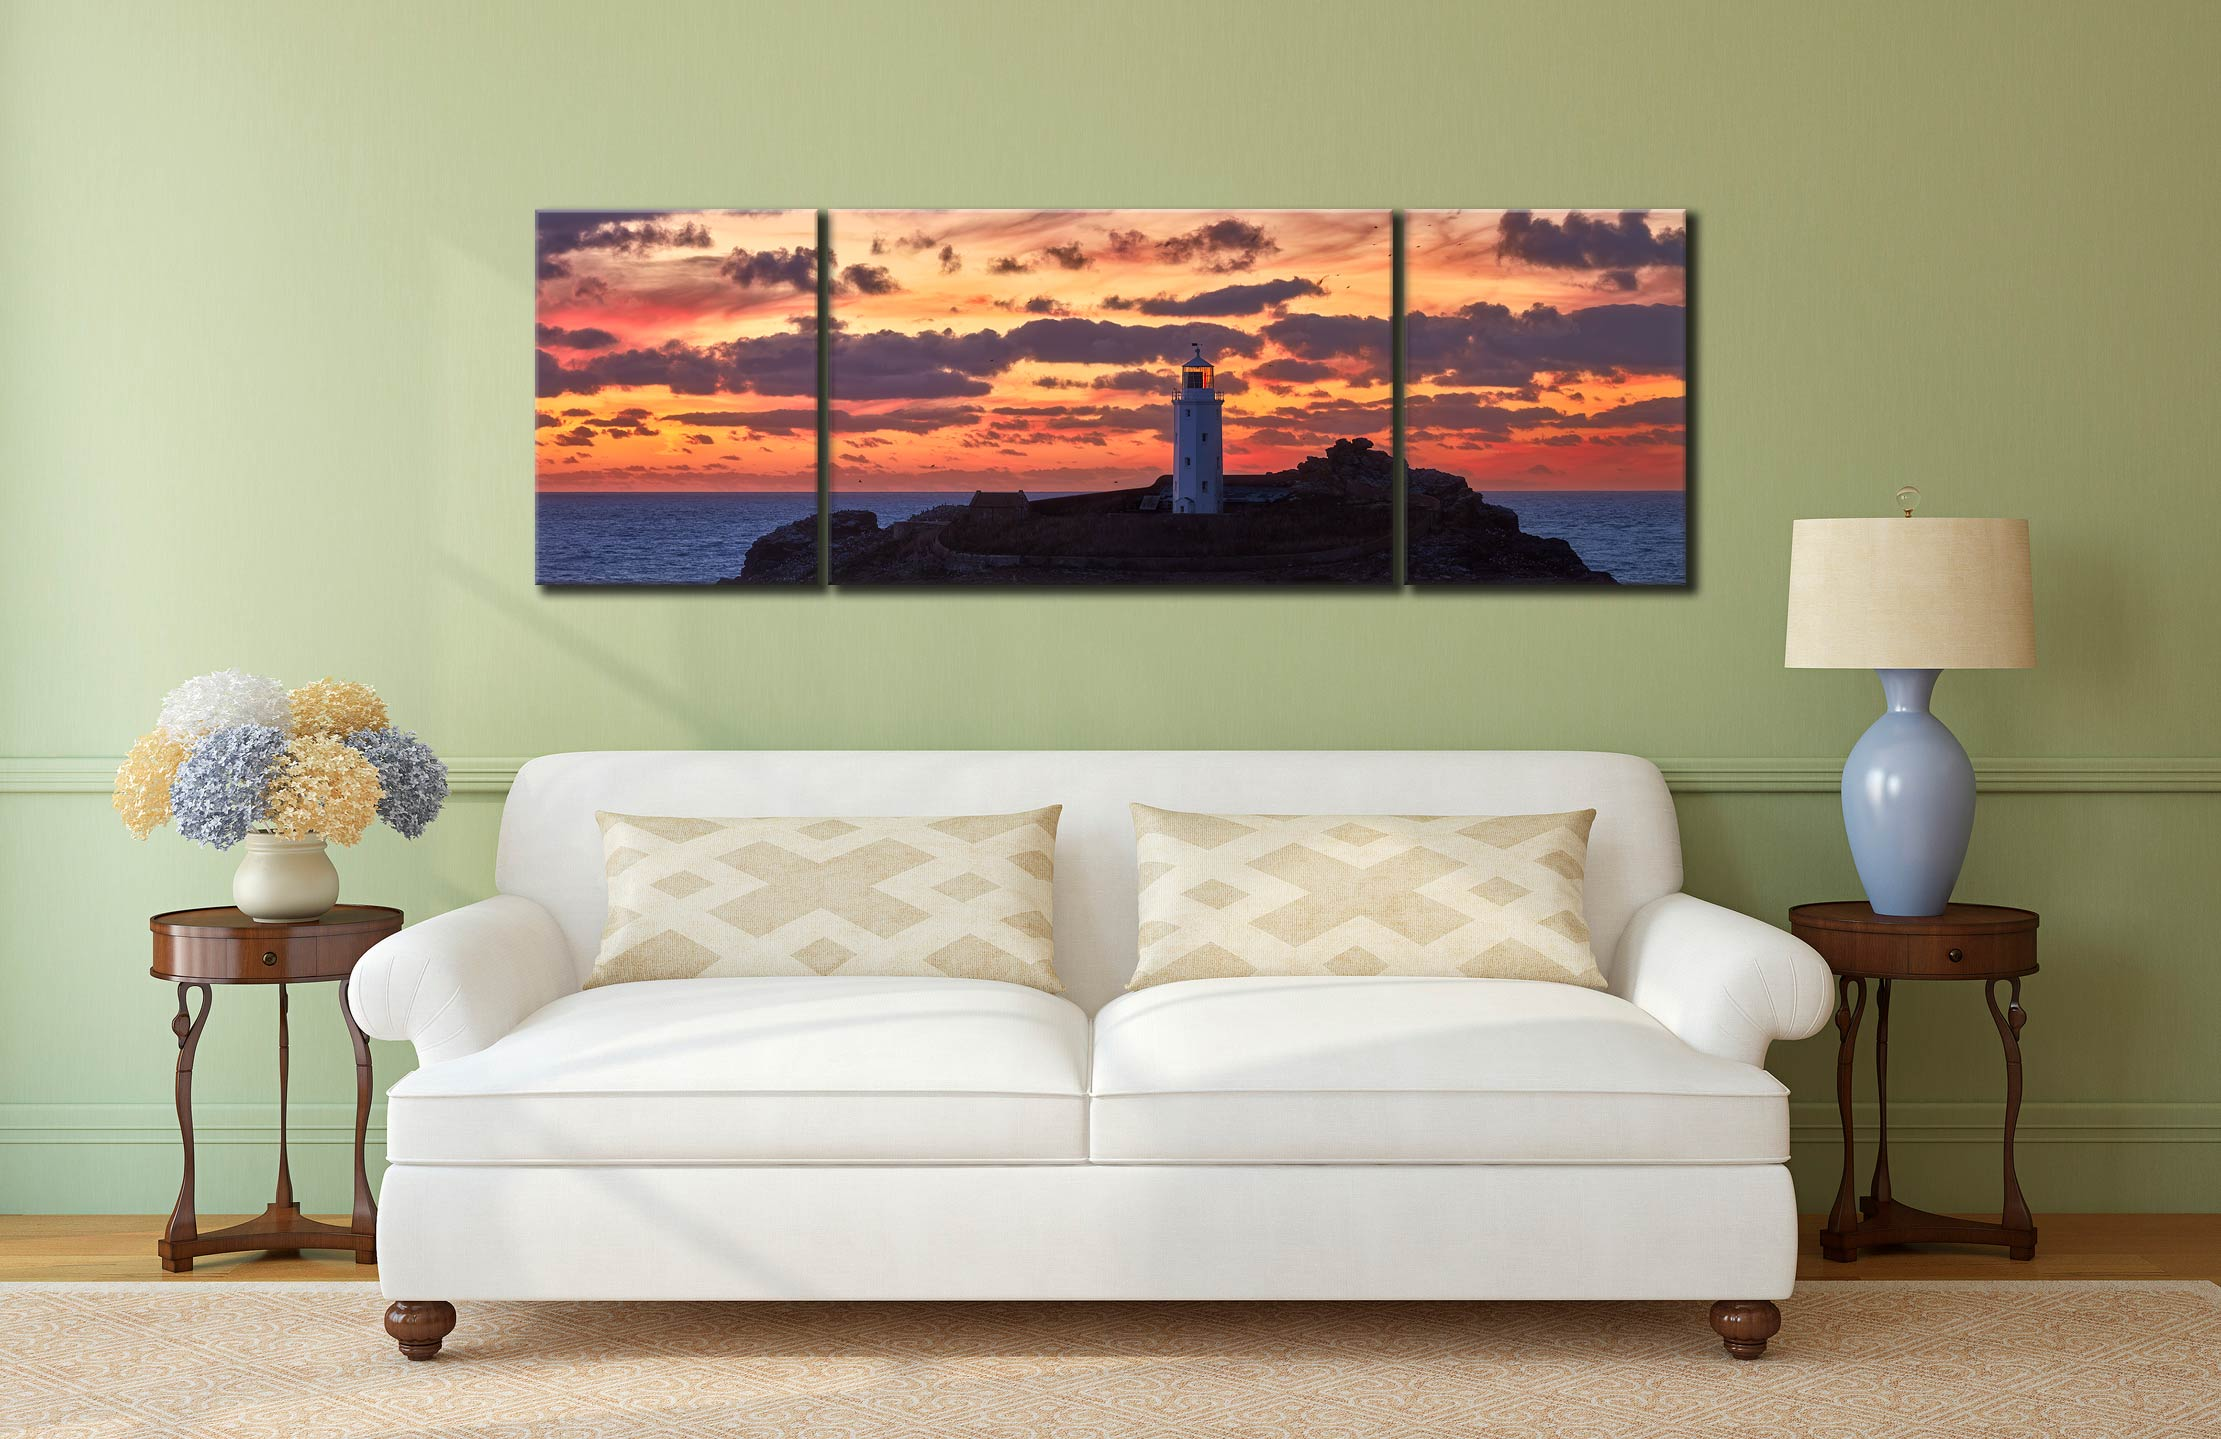 Painted Skies of Dusk at Godrevy - 3 Panel Wide Mid Canvas on Wall